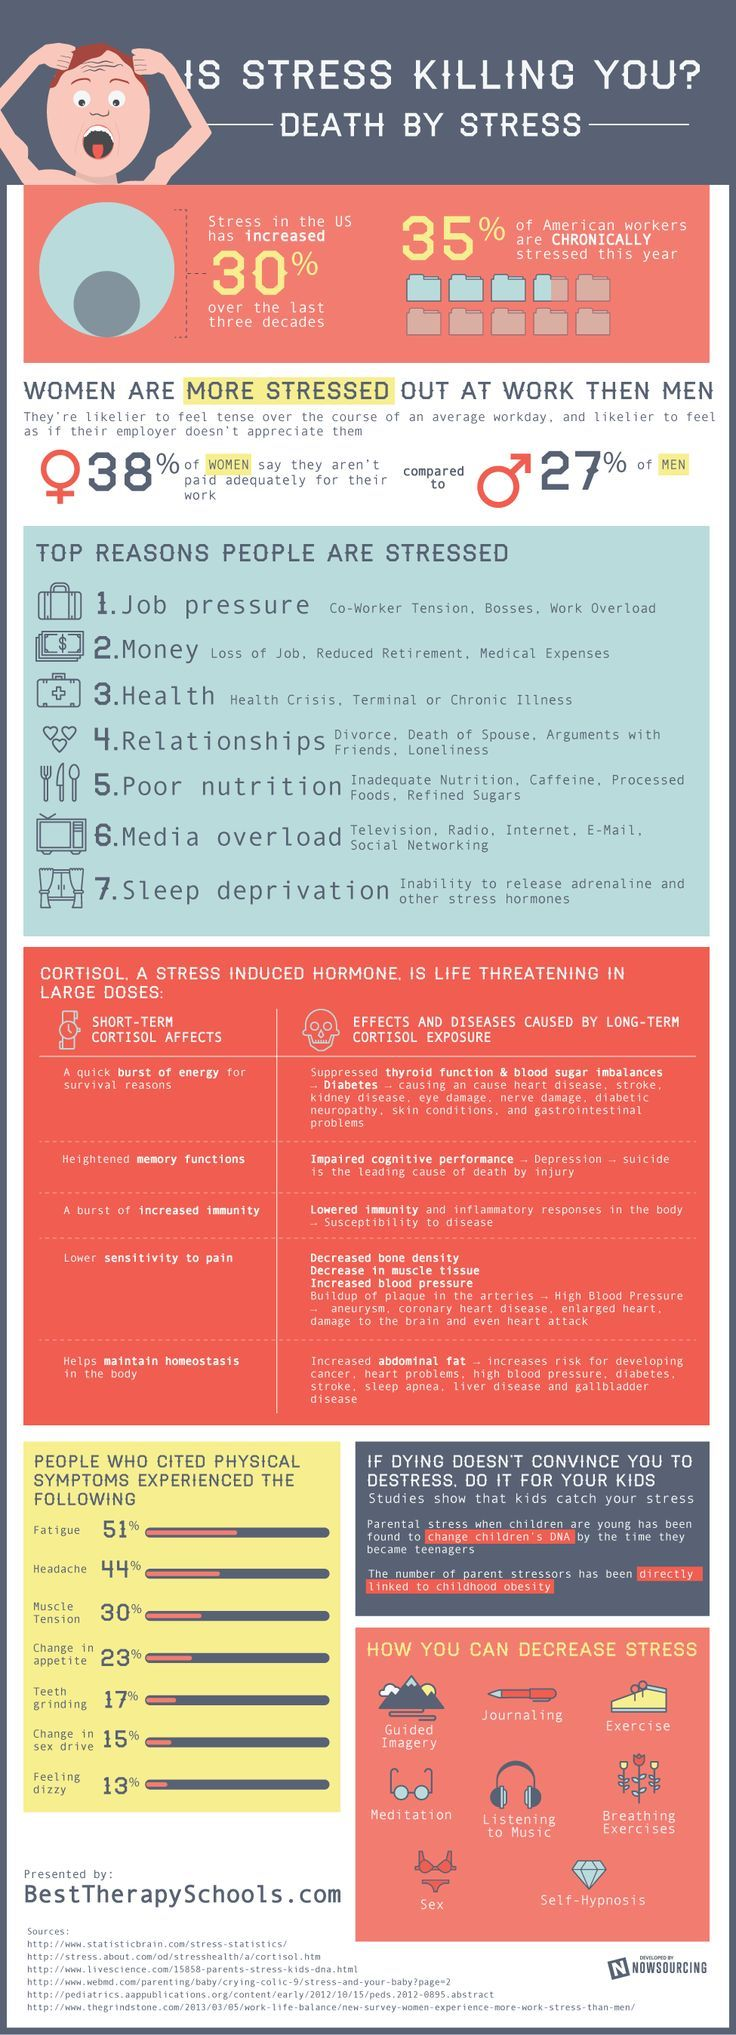 This info-graphic helps you to identify the symptoms of stress and suggests some simple ways to de-stress - some more appealing than others!